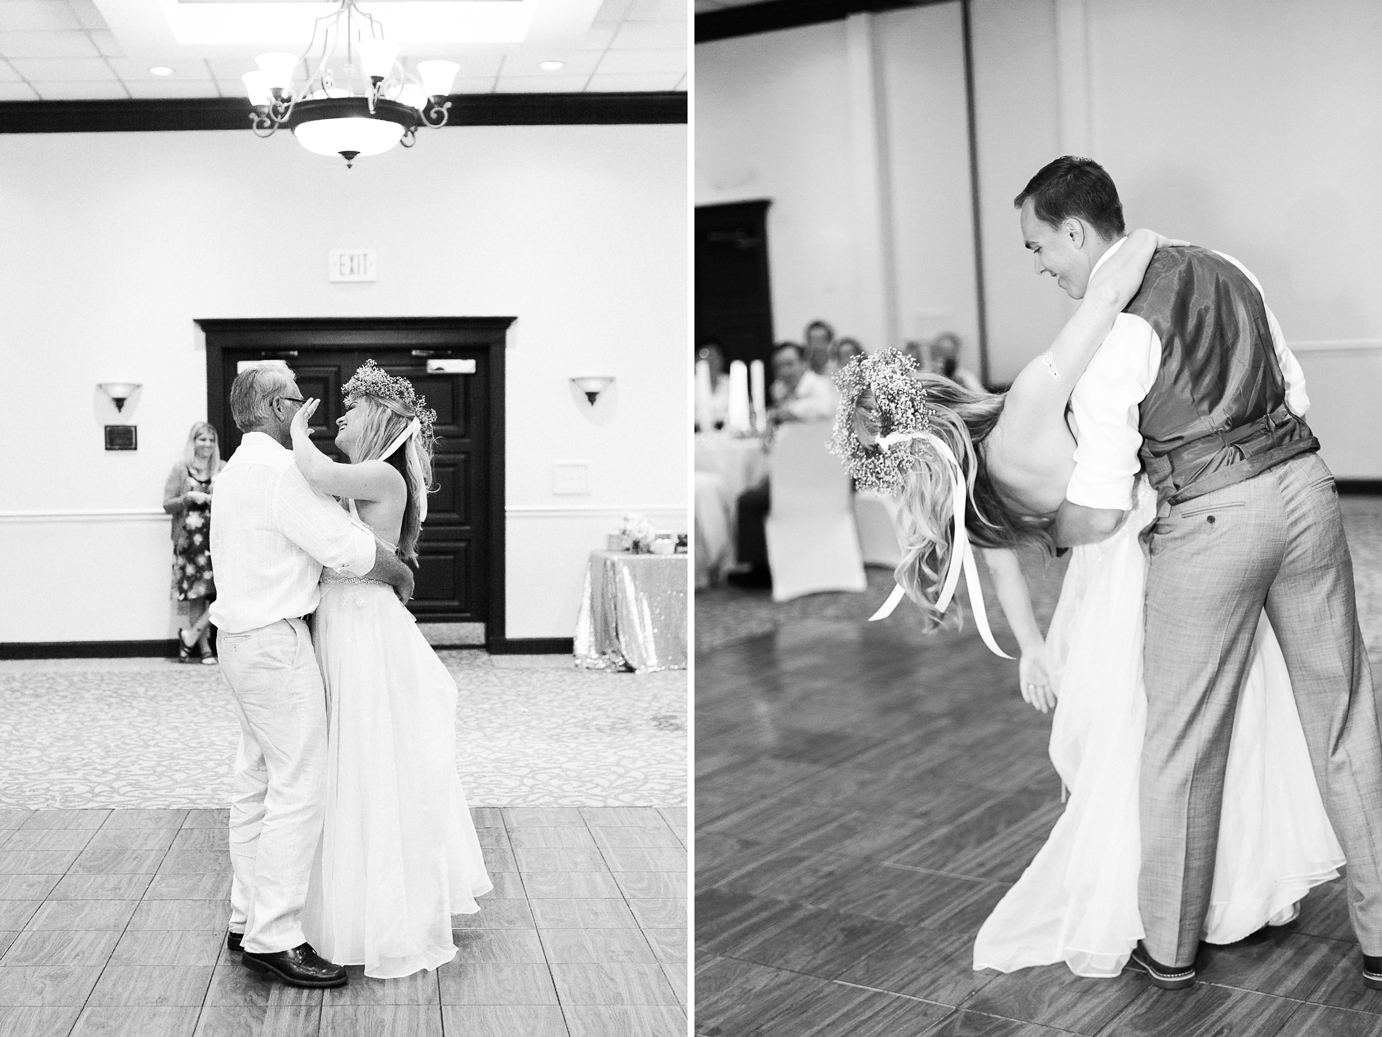 First dance and father-daughter dance in a wedding | Jekyll Island, GA